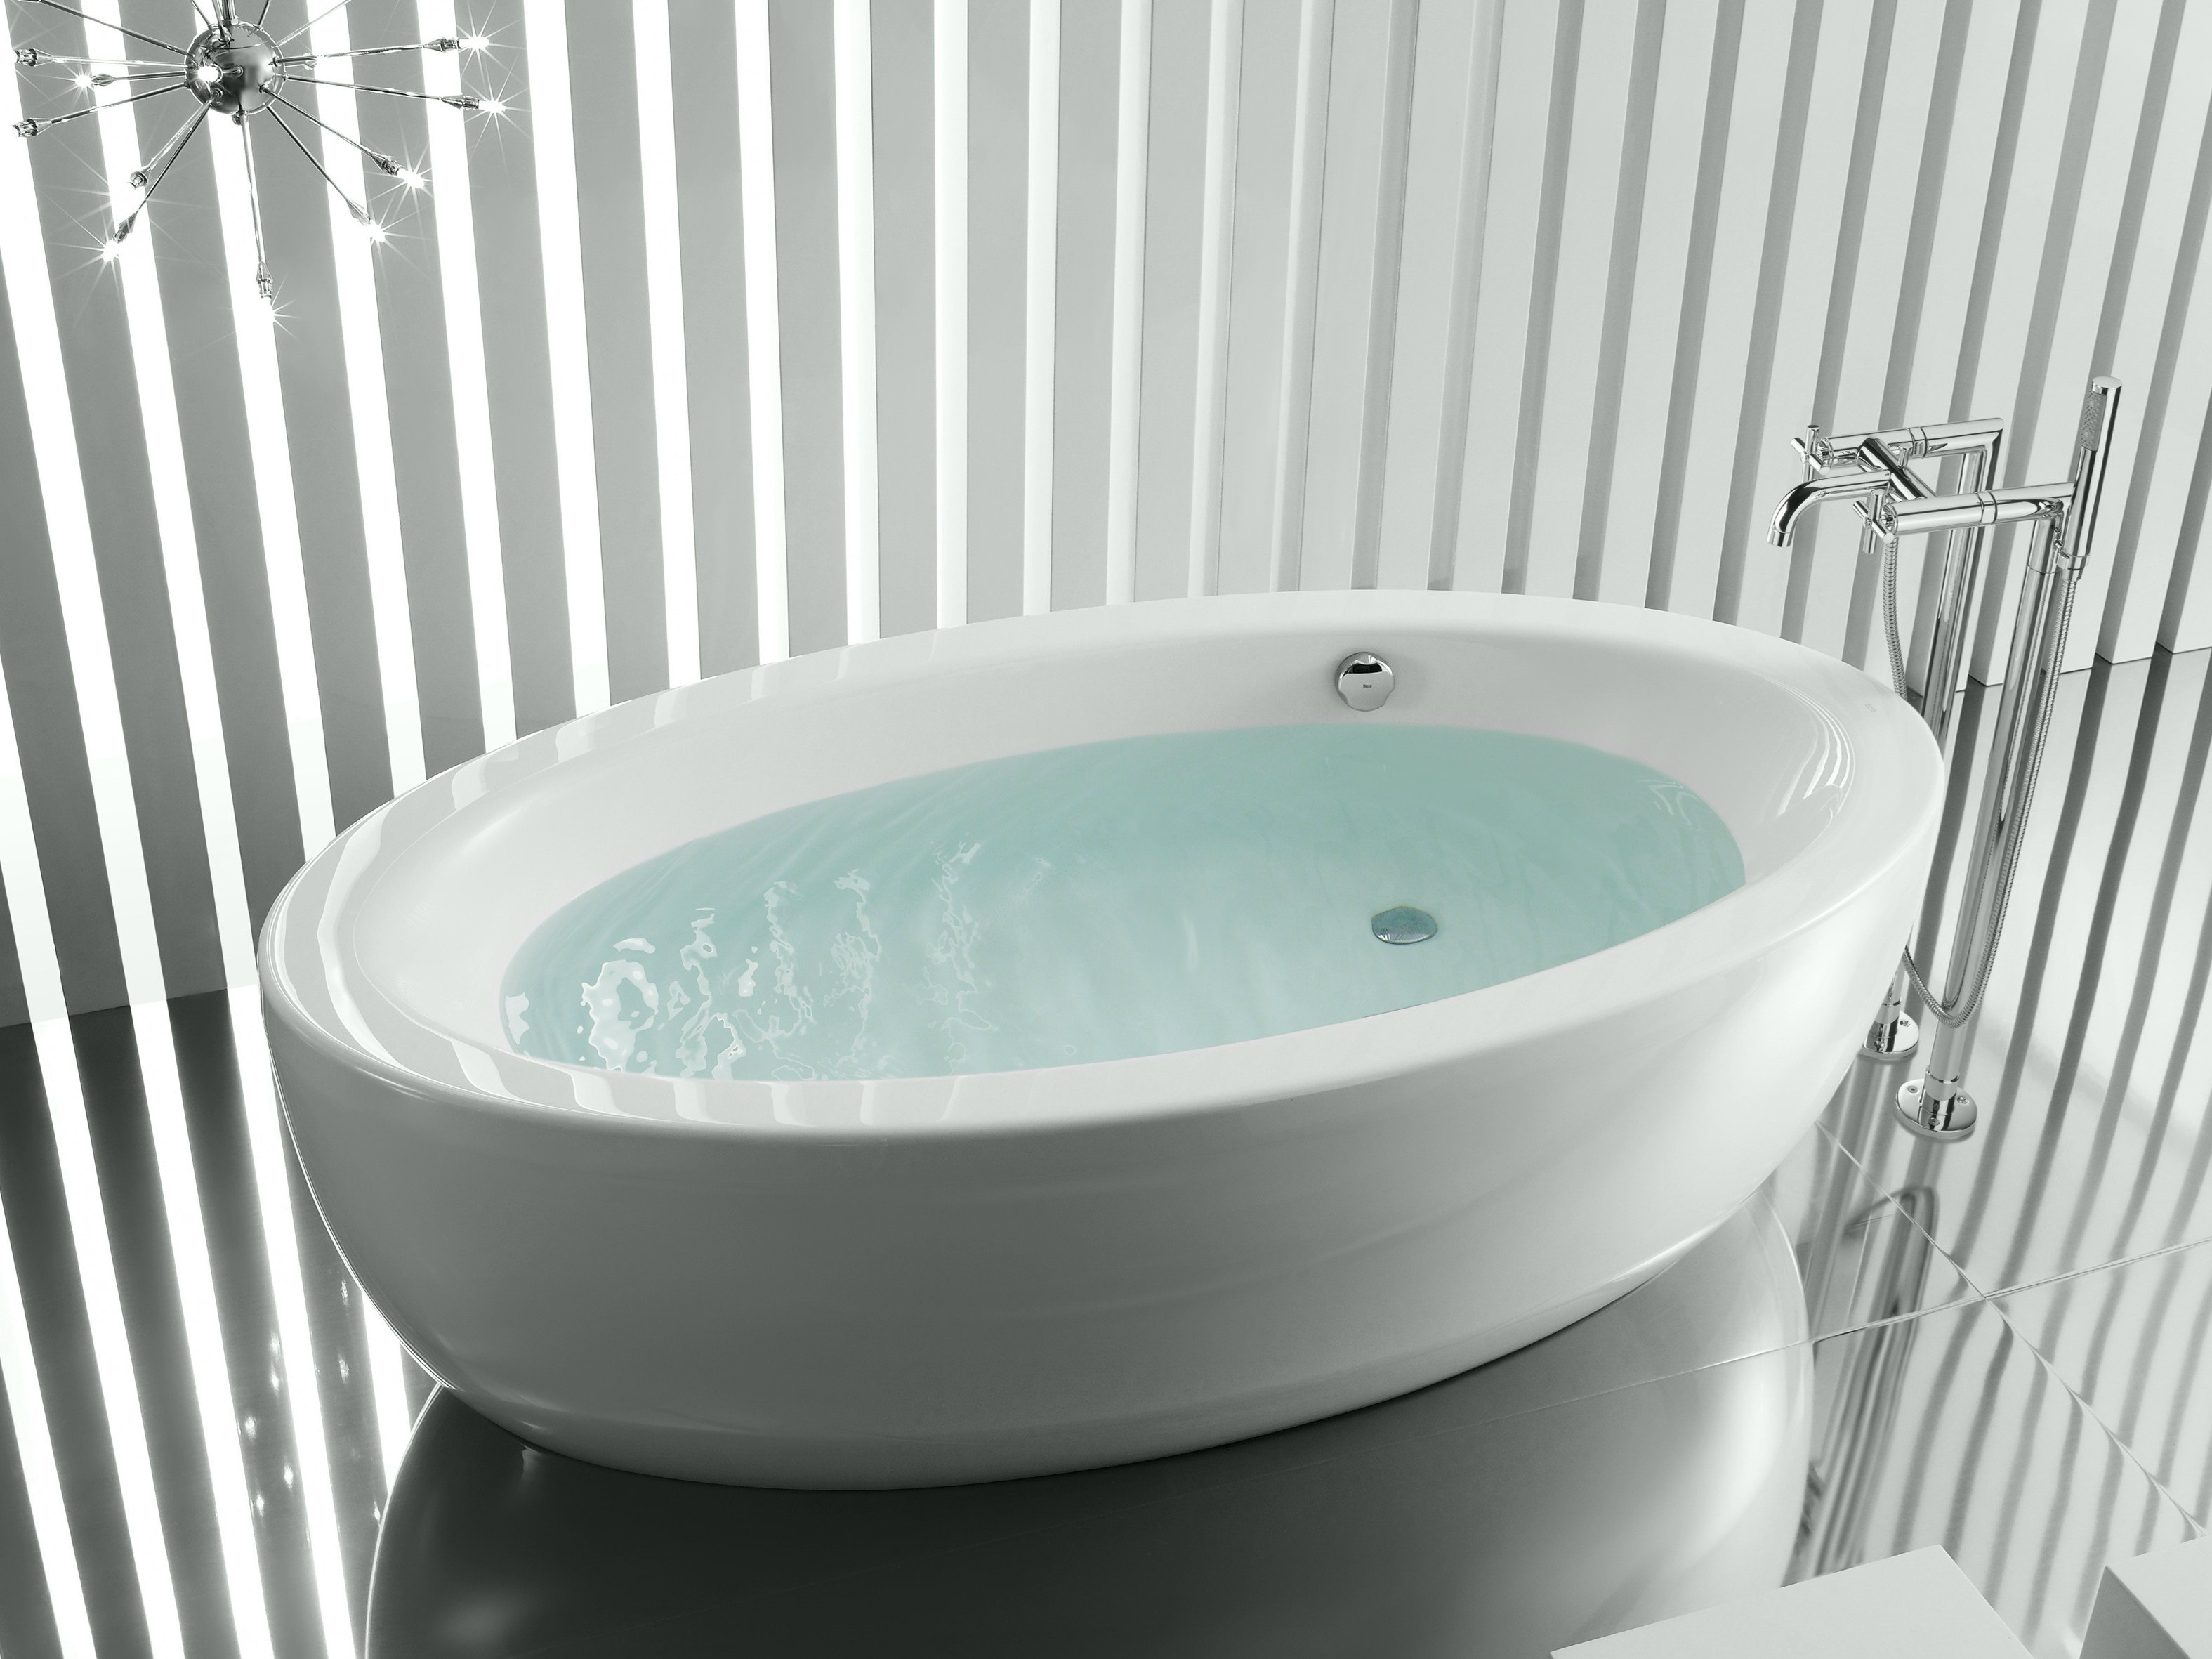 Freestanding oval bathtub georgia by roca for Oval tub sizes